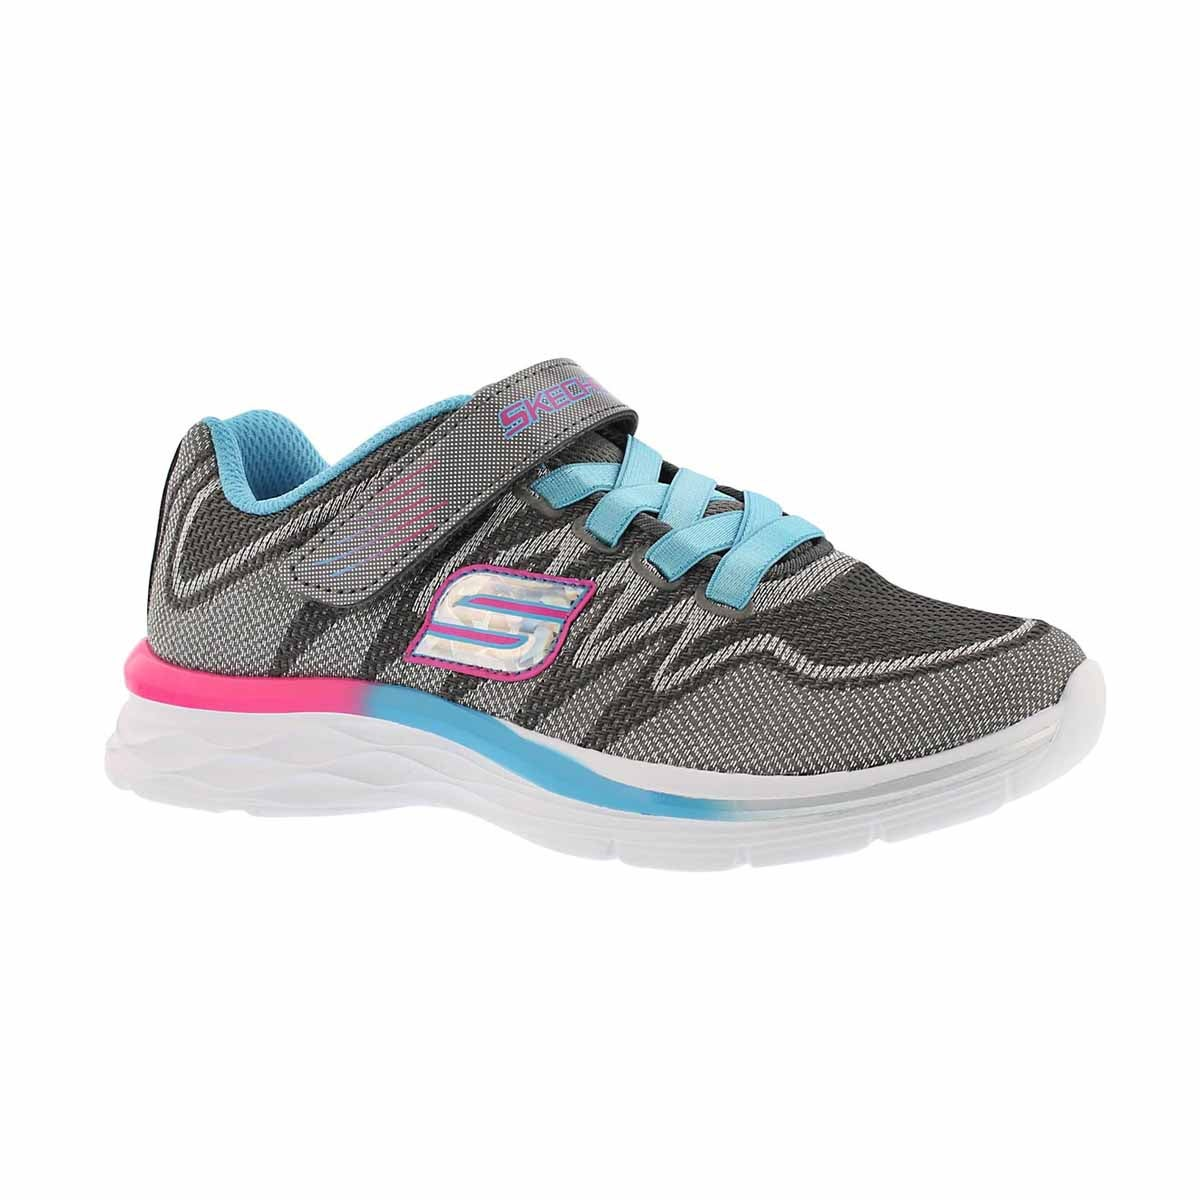 Girls' DREAM N' DASH grey/blue sneakers